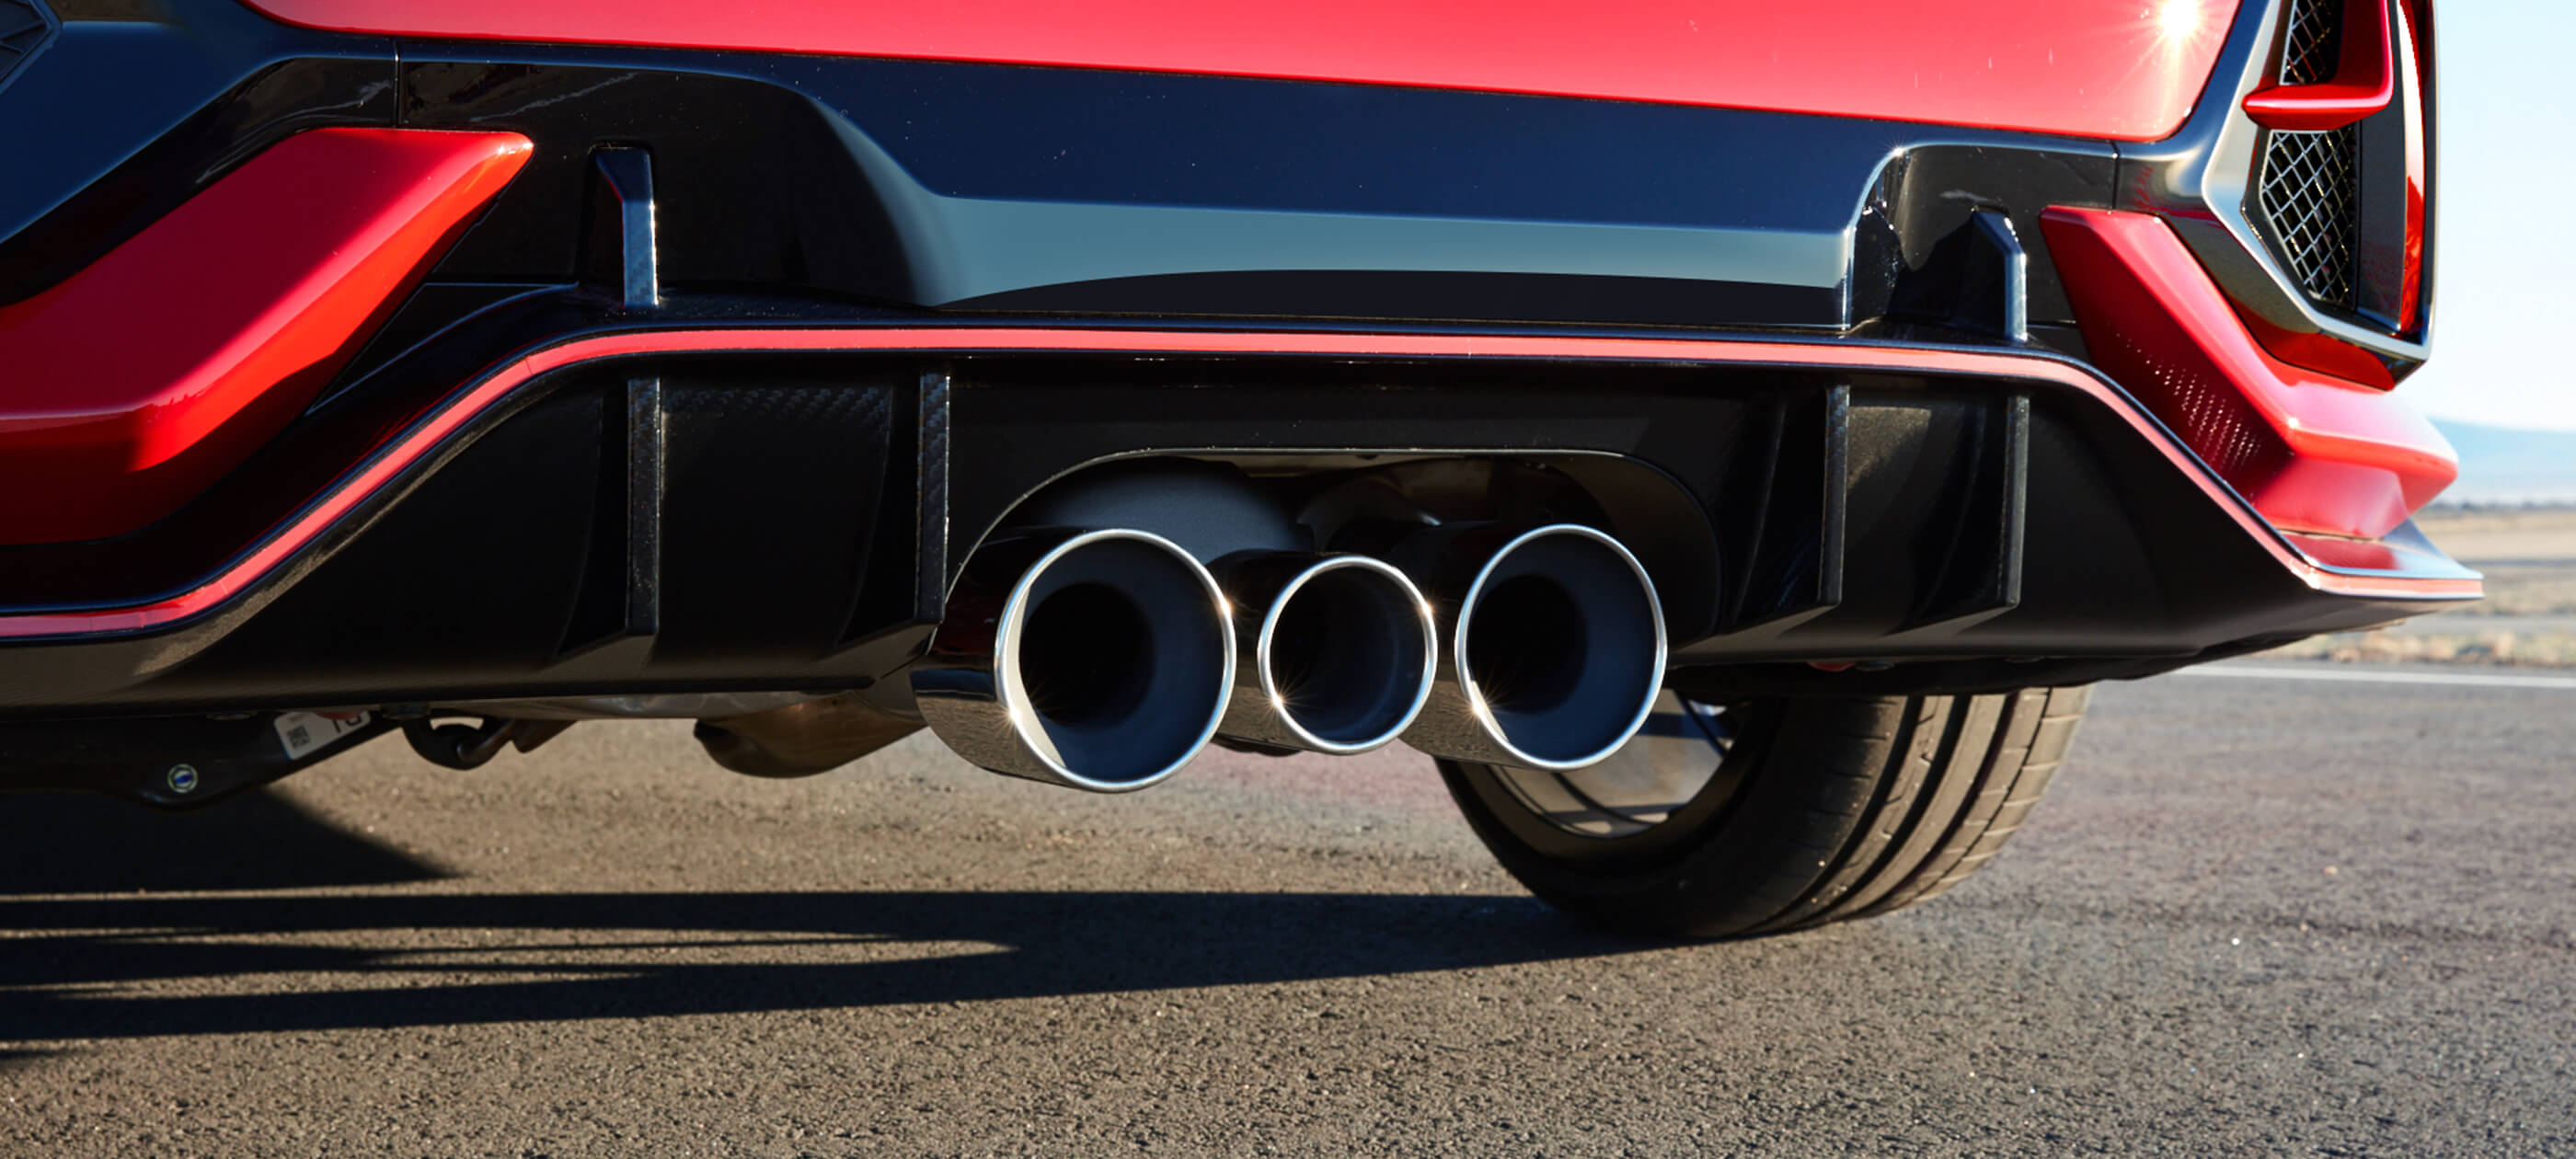 Triple Outlet Exhaust